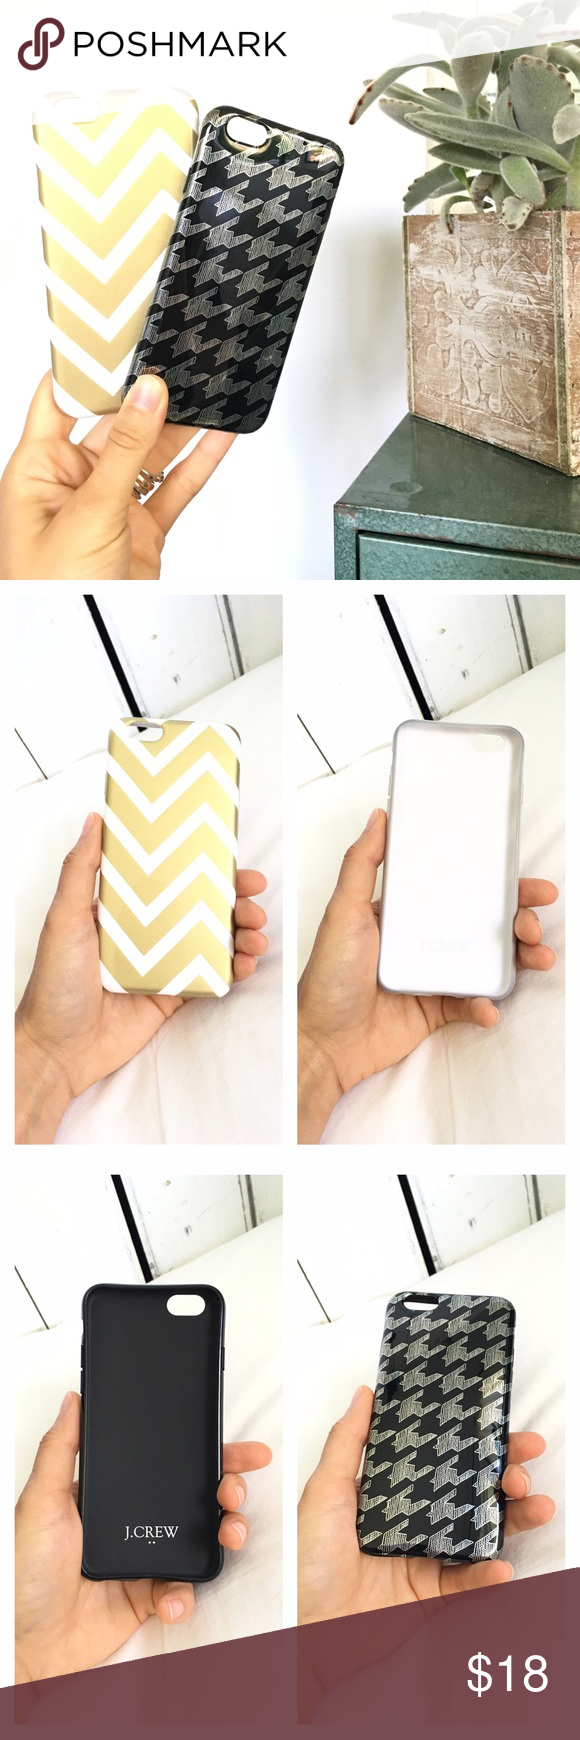 Listing! 2 J. Crew iPhone 6/6s cases Two J. Crew iPhone 6/6s phone cases. Both in beautiful condition. Very lightly used. Black houndstooth and gold chevron. They both have a few *very* light scratches on the back, but aren't noticeable except at a certain angle. I tried to show them in the last picture. These are perfect for fall/winter season! J. Crew Accessories Phone Cases